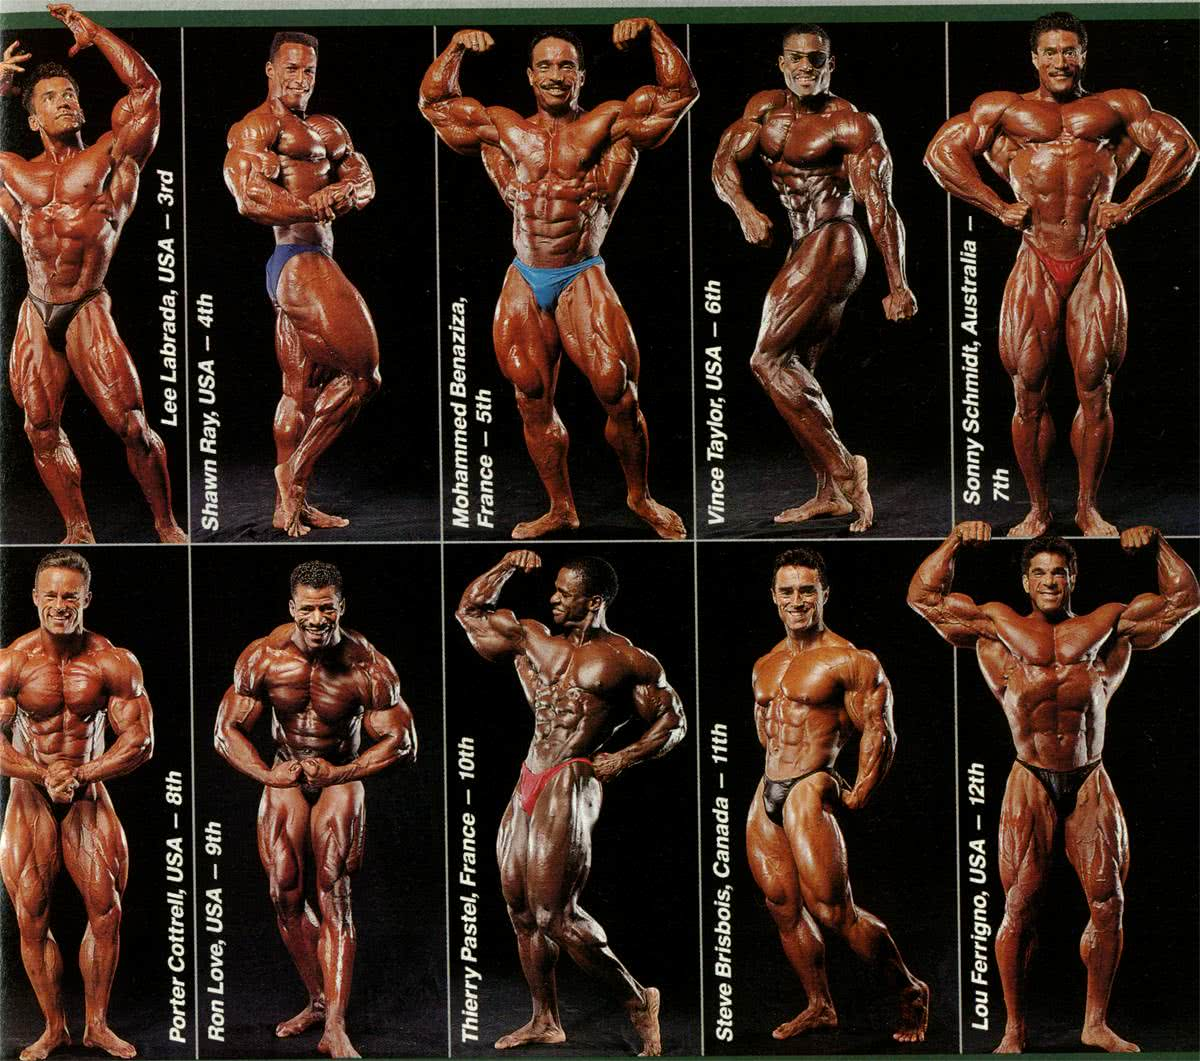 Mr. Olympia 1992 - Helsinki, Lee Labrada, Shawn Ray, Mohamed Benazizza, Vince Taylor, Sonny Schmidt, Porter Cottrell, Ron Love, Thierry Pastel, Steve Brisbois, Lou Ferrigno